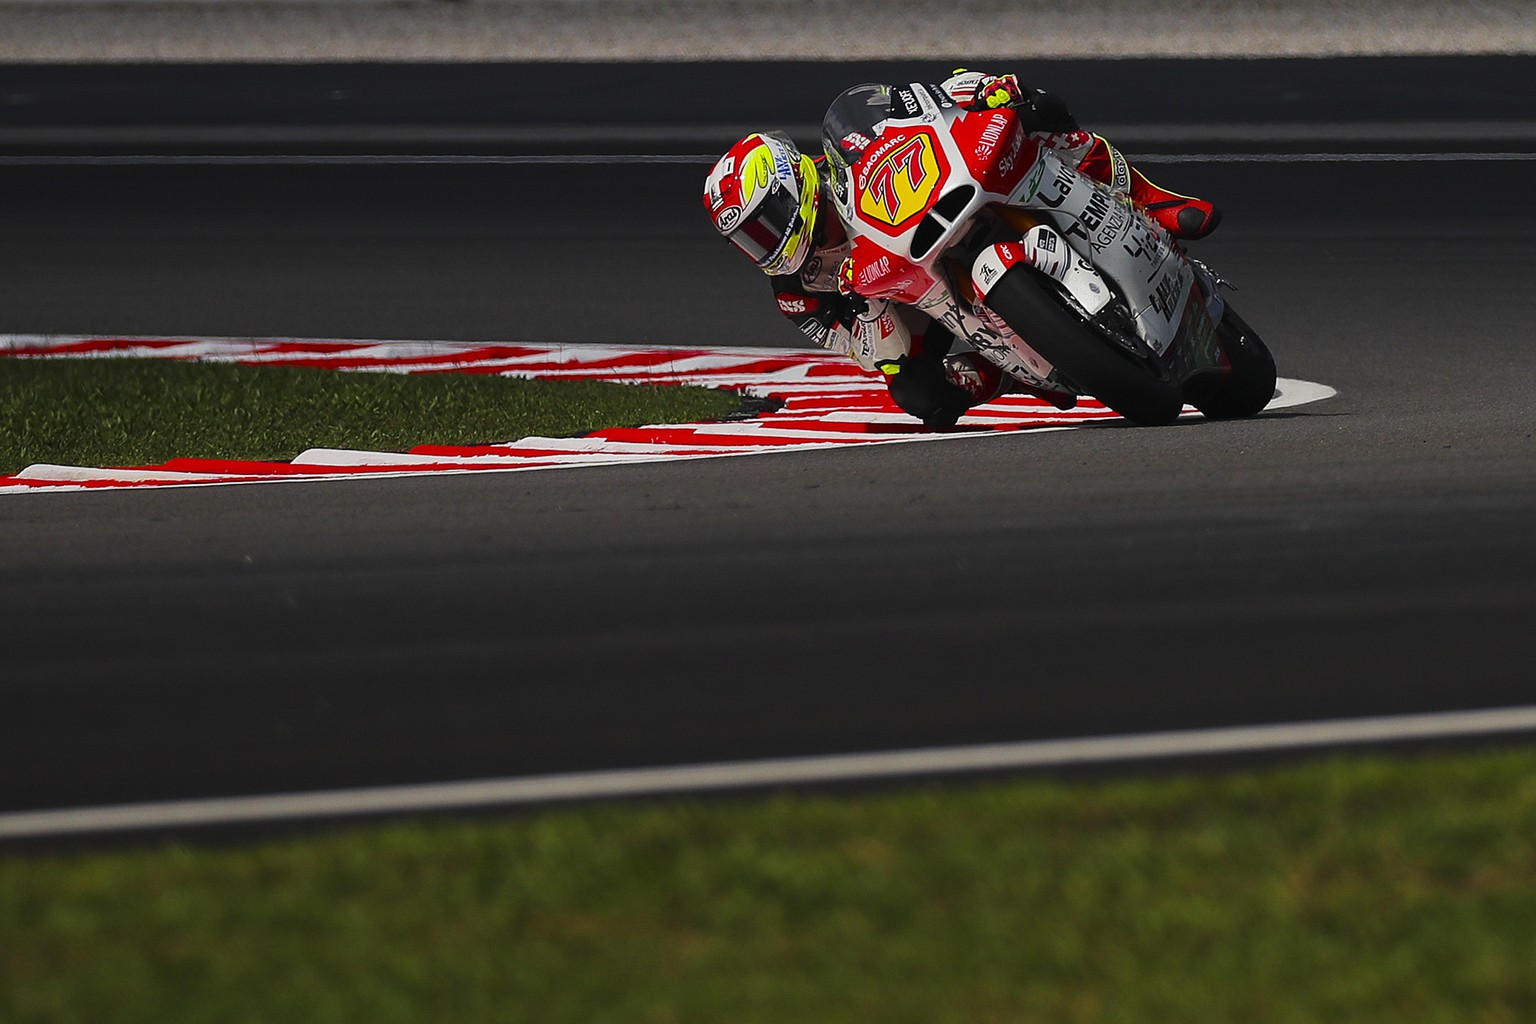 epa07963665 Swiss Moto2 rider Dominique Aegerter of the MV Agusta Temporary Forward during the free practice of the Motorcycle Grand Prix of Malaysia 2019 at Sepang International Circuit in Sepang, Selangor, Malaysia, 01 November 2019. The 2019 Malaysia Motorcycling Grand Prix will take place on 03 November 2019.  EPA/FAZRY ISMAIL